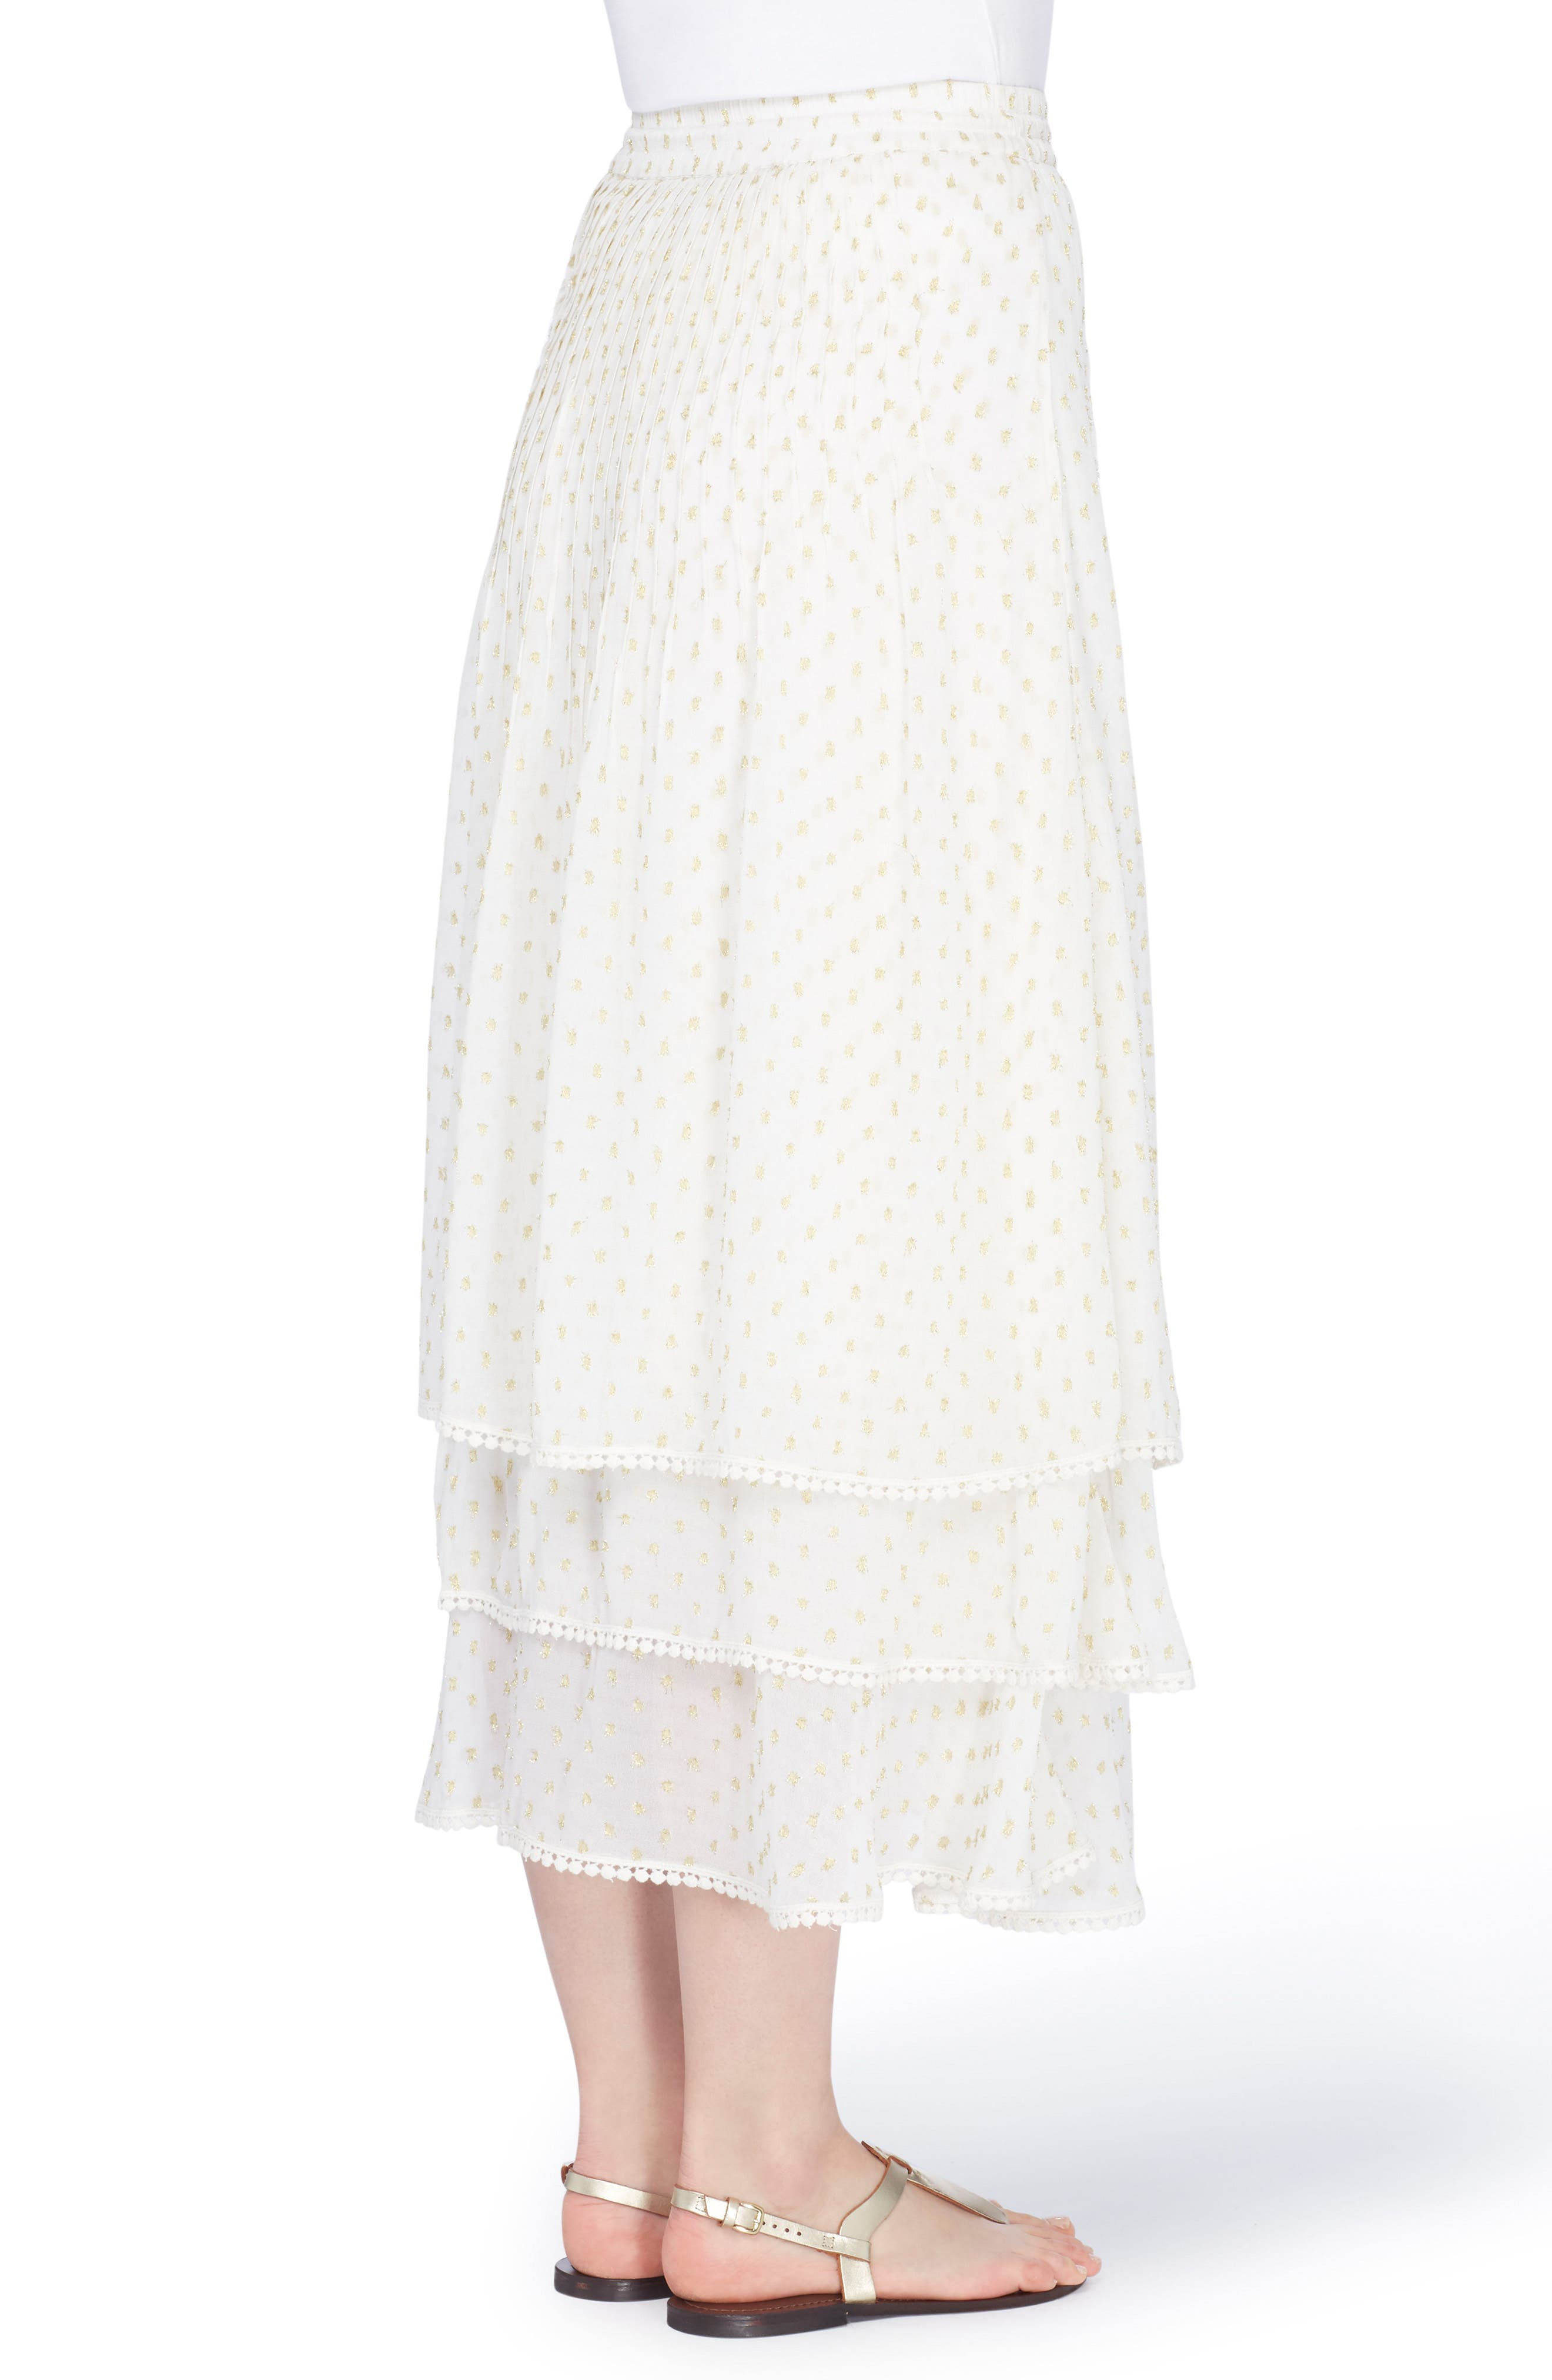 Berbas Clipped Jacquard Tiered Skirt,                             Alternate thumbnail 2, color,                             Off White/ Gold